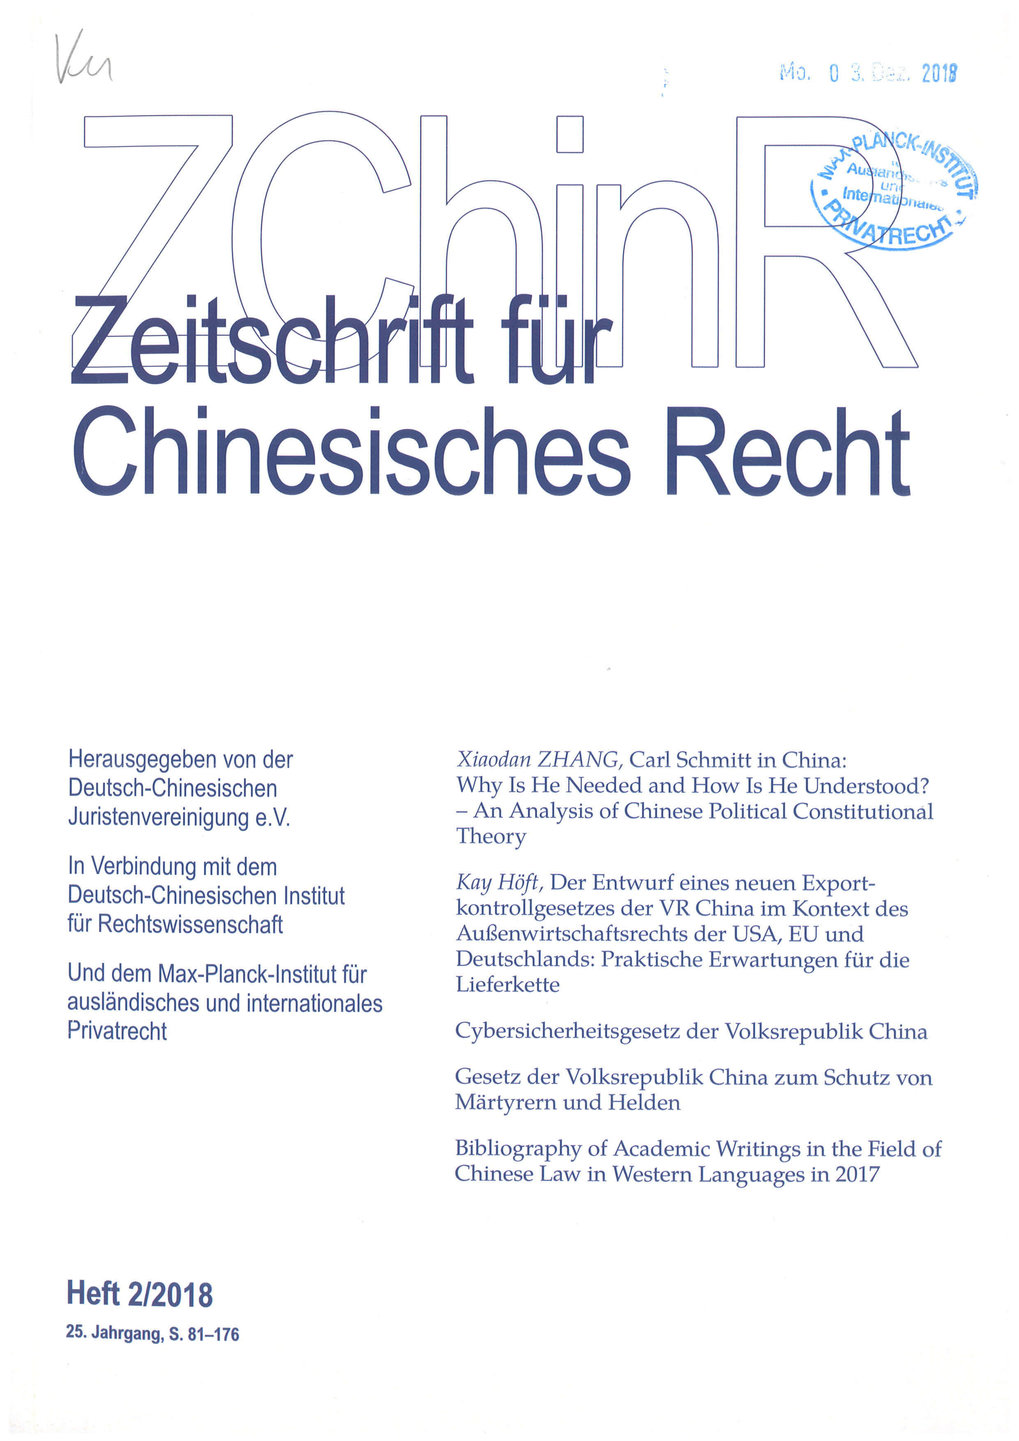 German Journal of Chinese Law